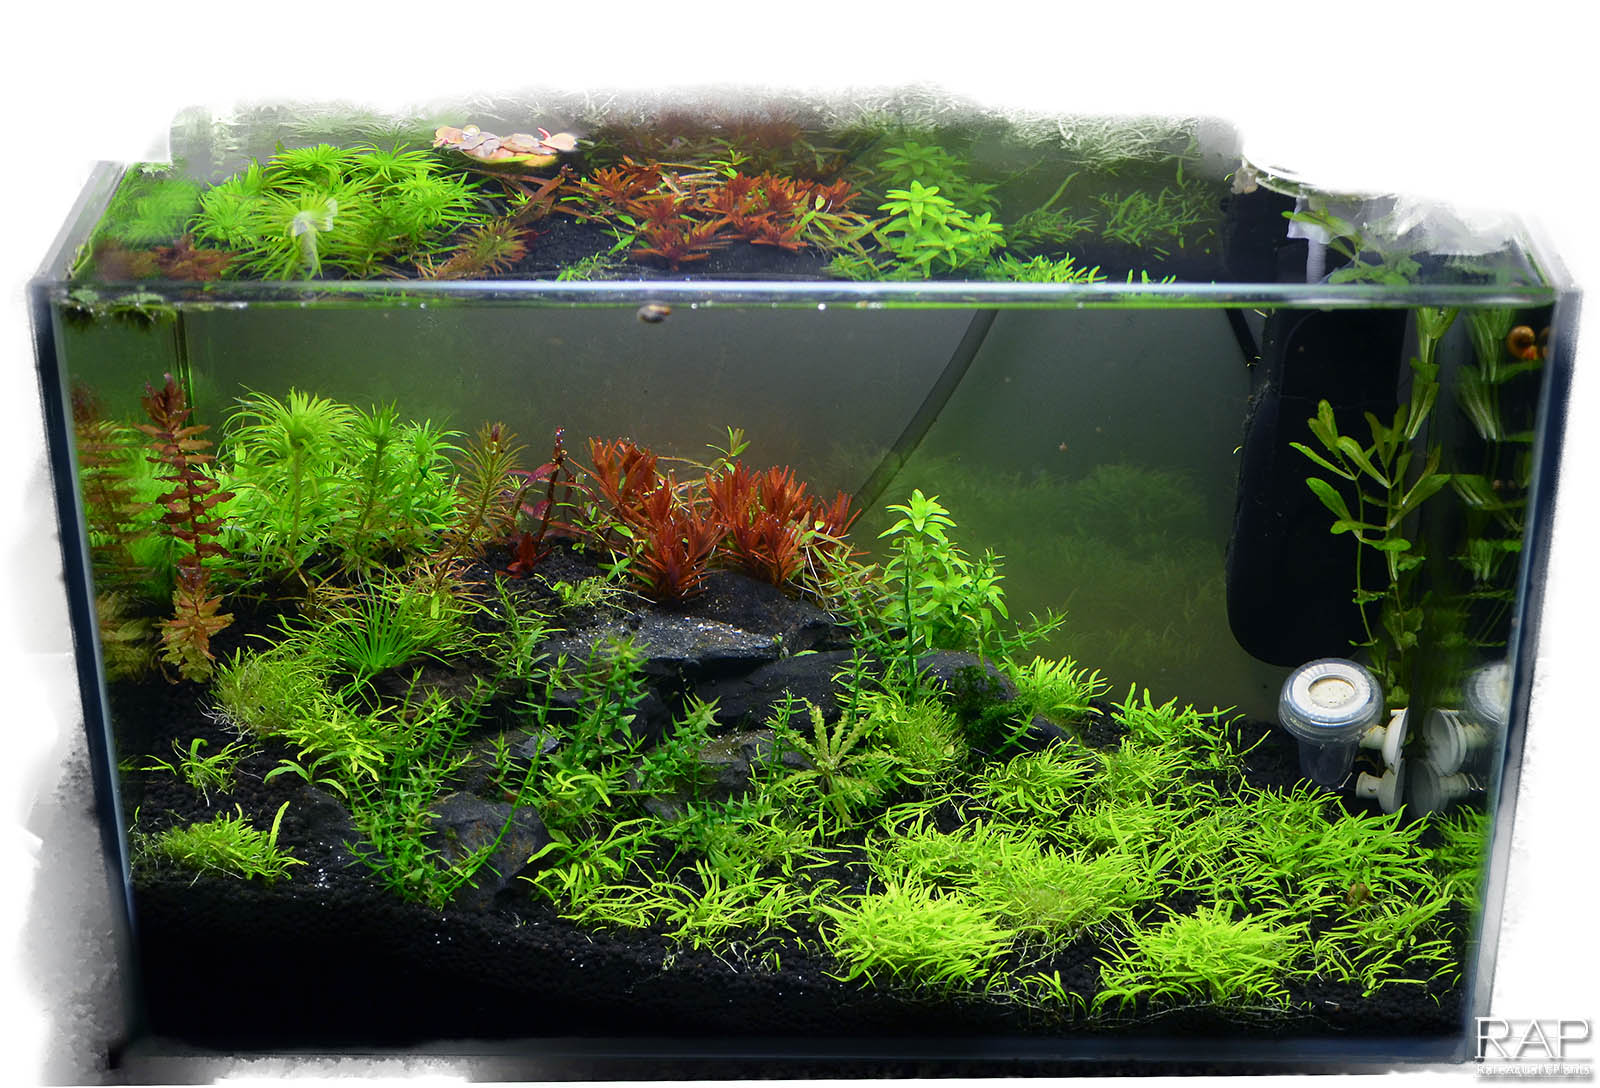 Absolute tropica aquarium soil